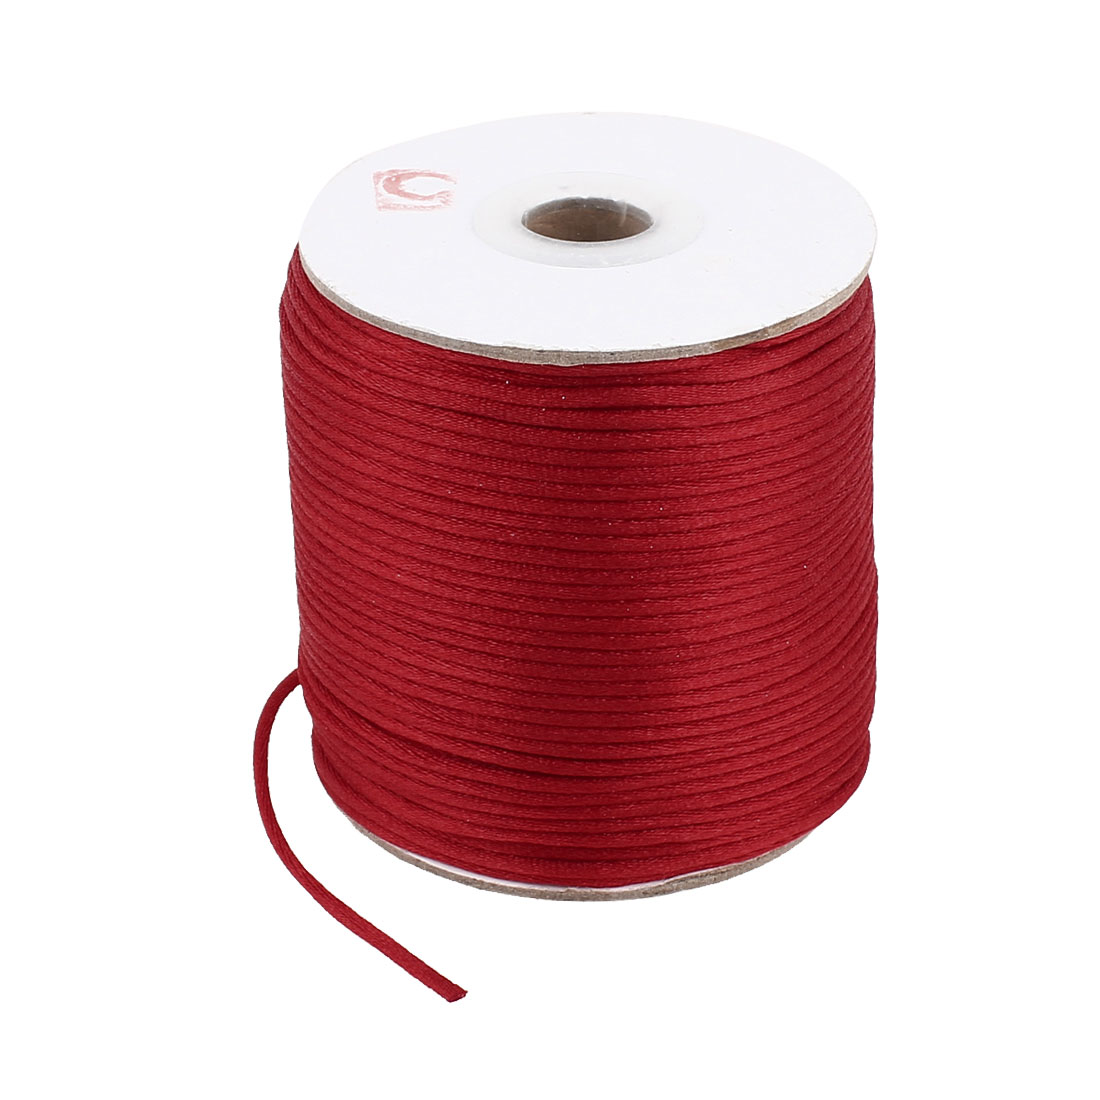 Red Nylon Handcraft Art Line DIY Chinese Knot Rattail Cord